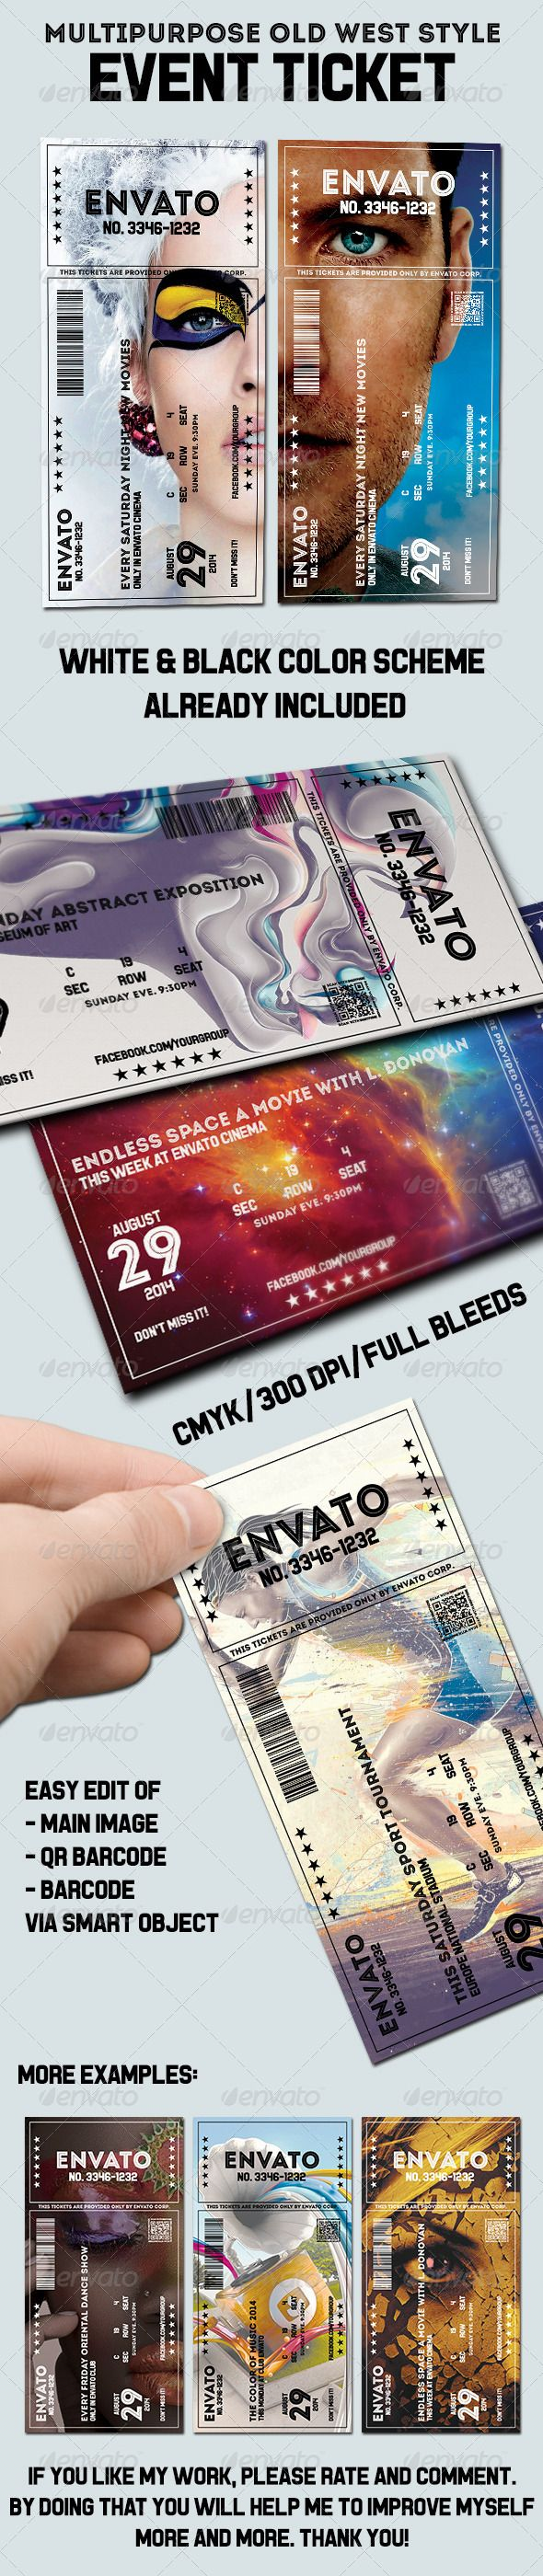 Event Ticket Template | Pin By Awesome Graphic Design On Cards Invites Design Print